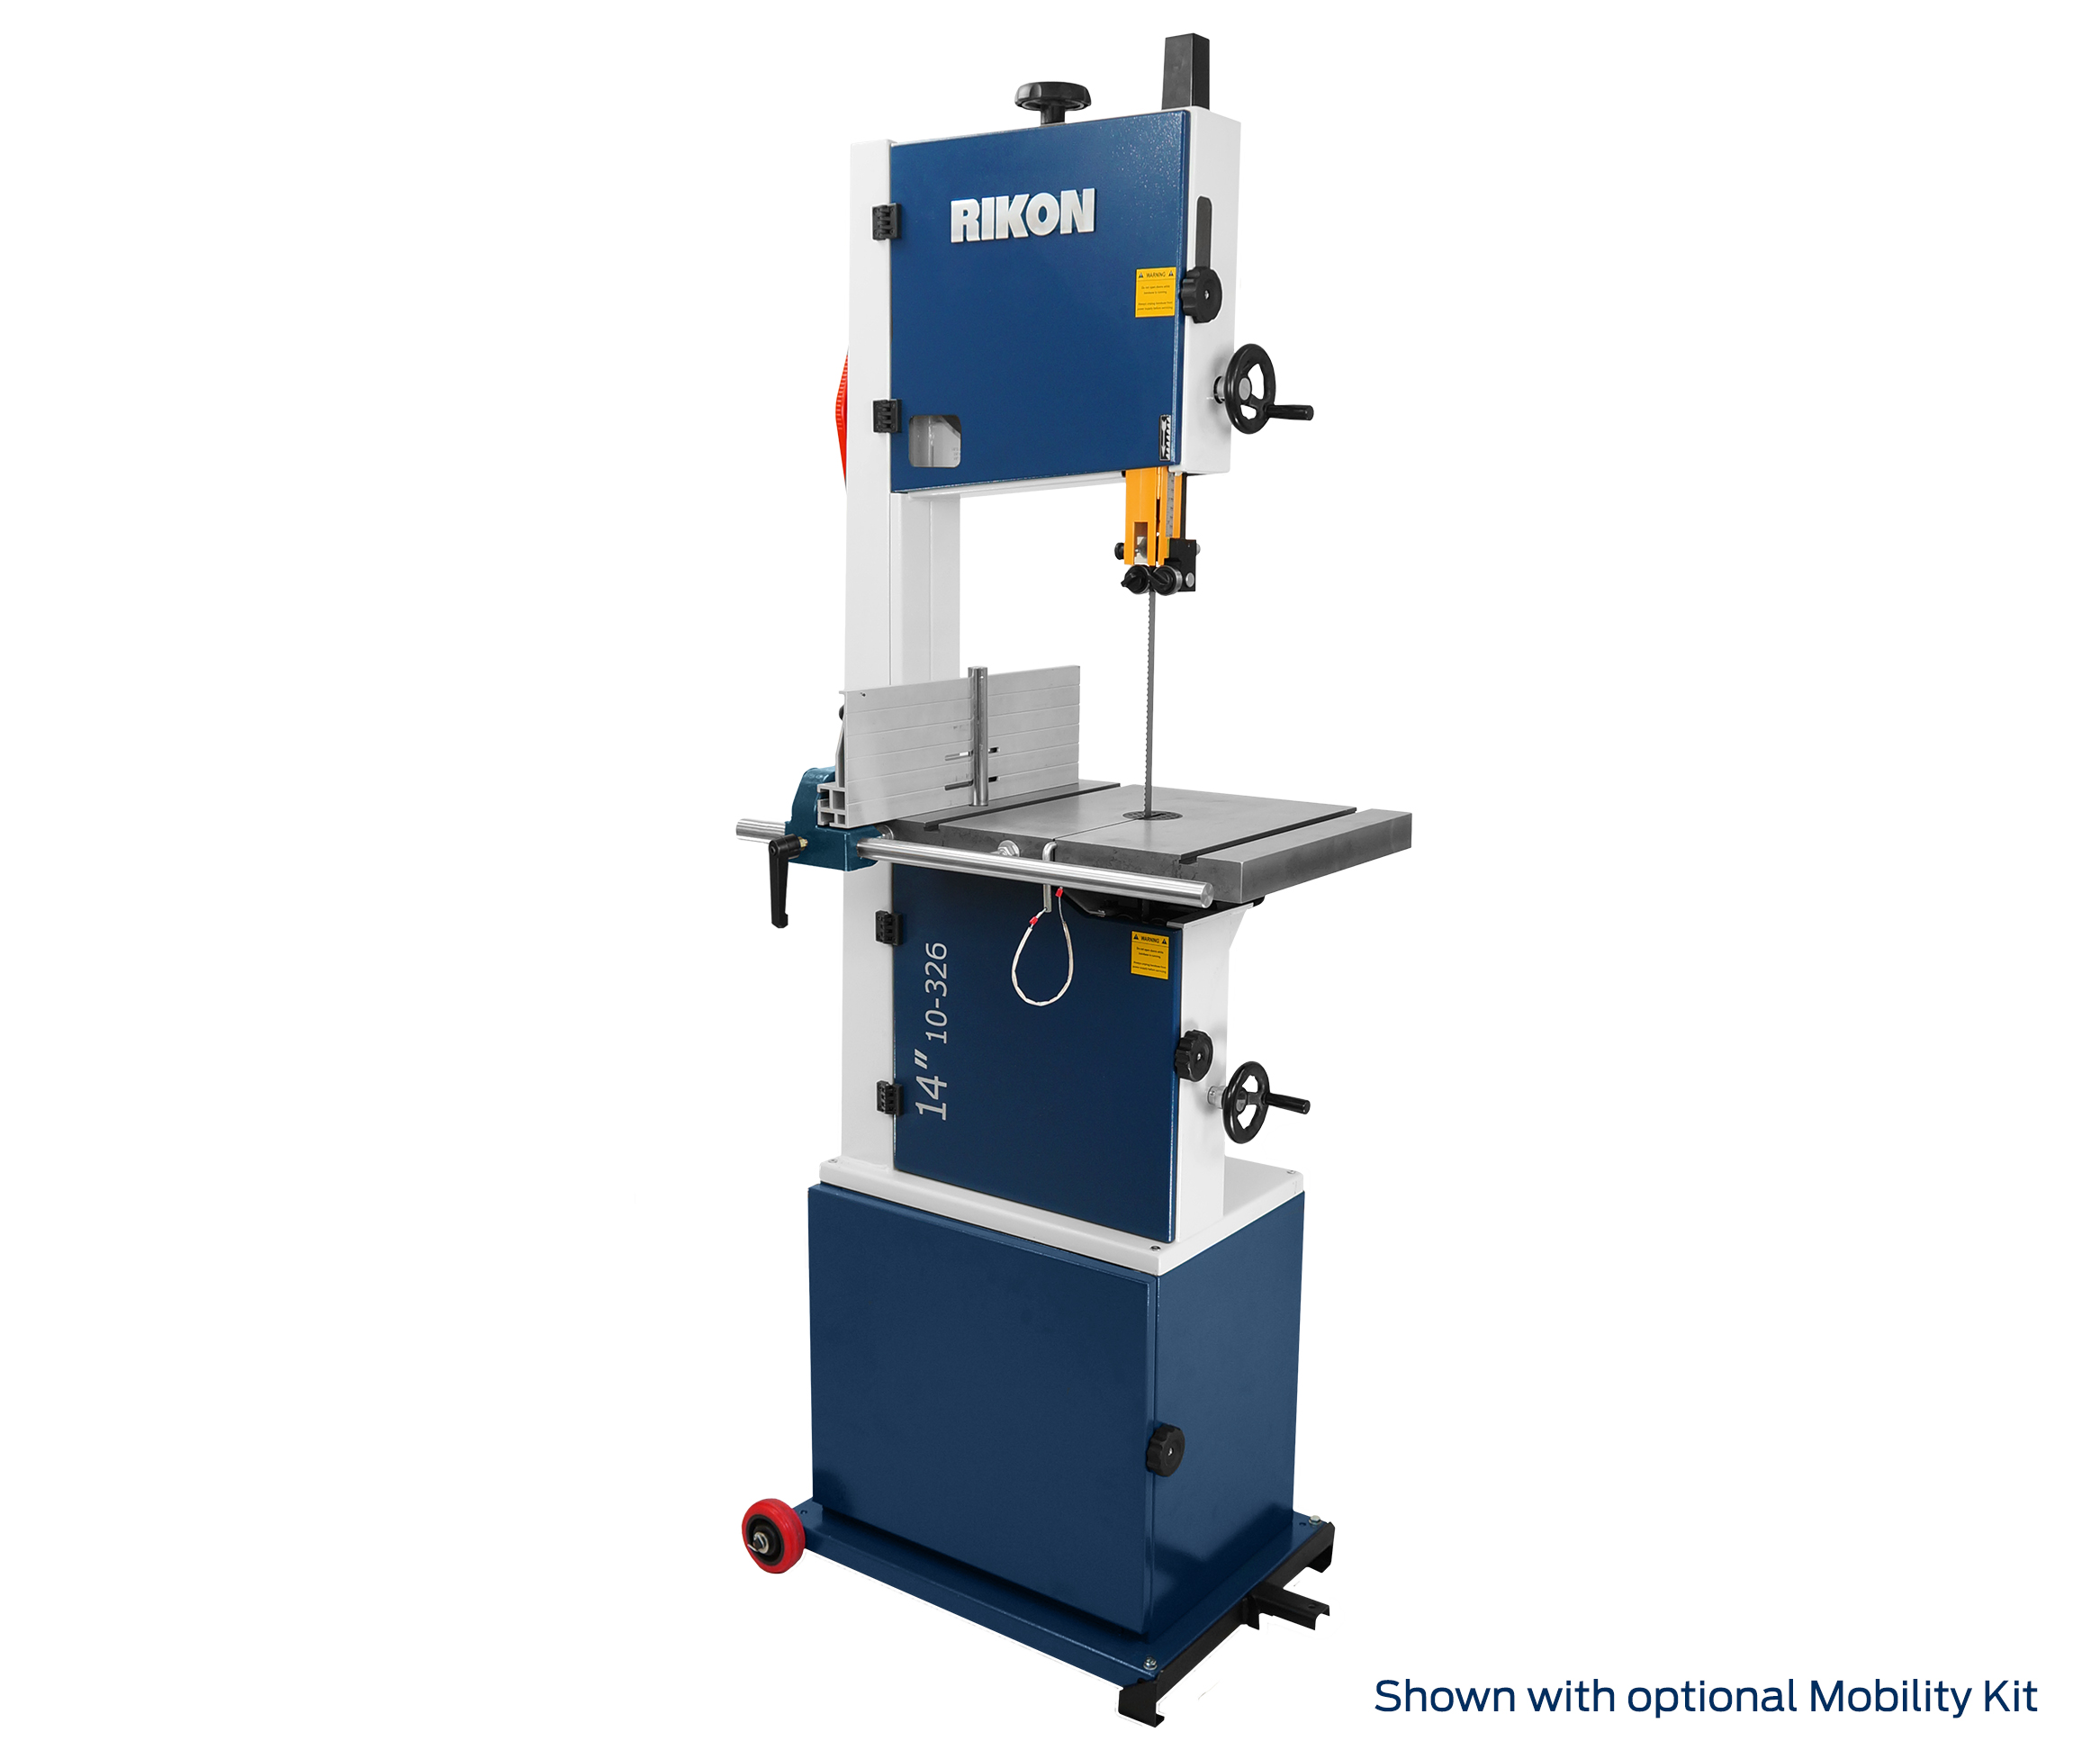 10 326 rikon 10 326 14 inch deluxe bandsaw